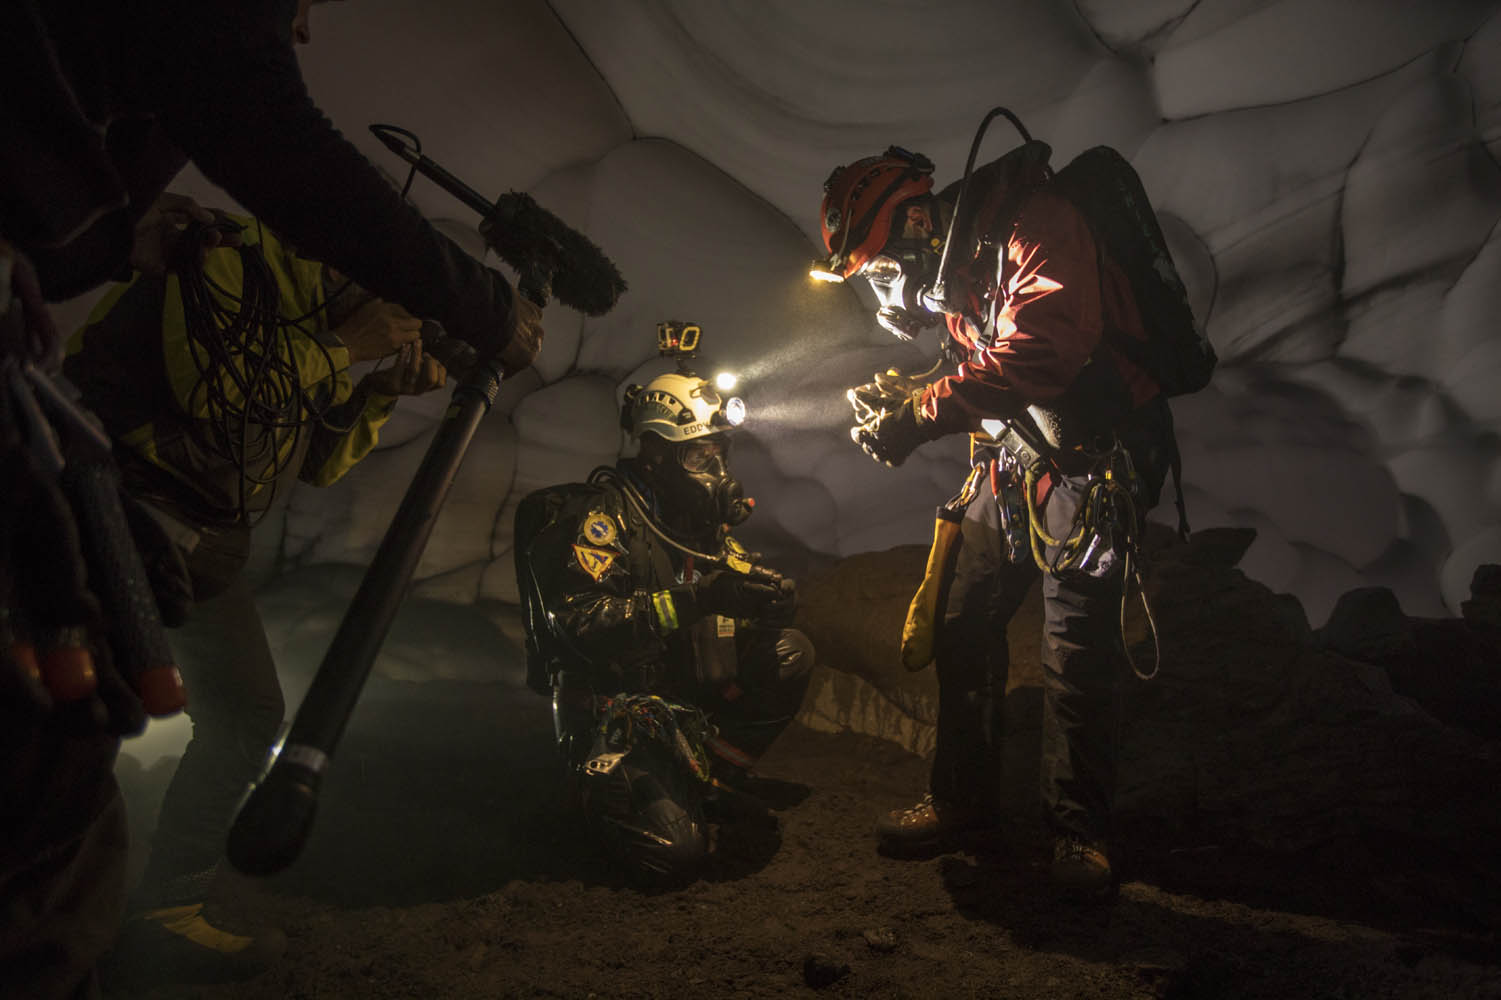 170502_0578